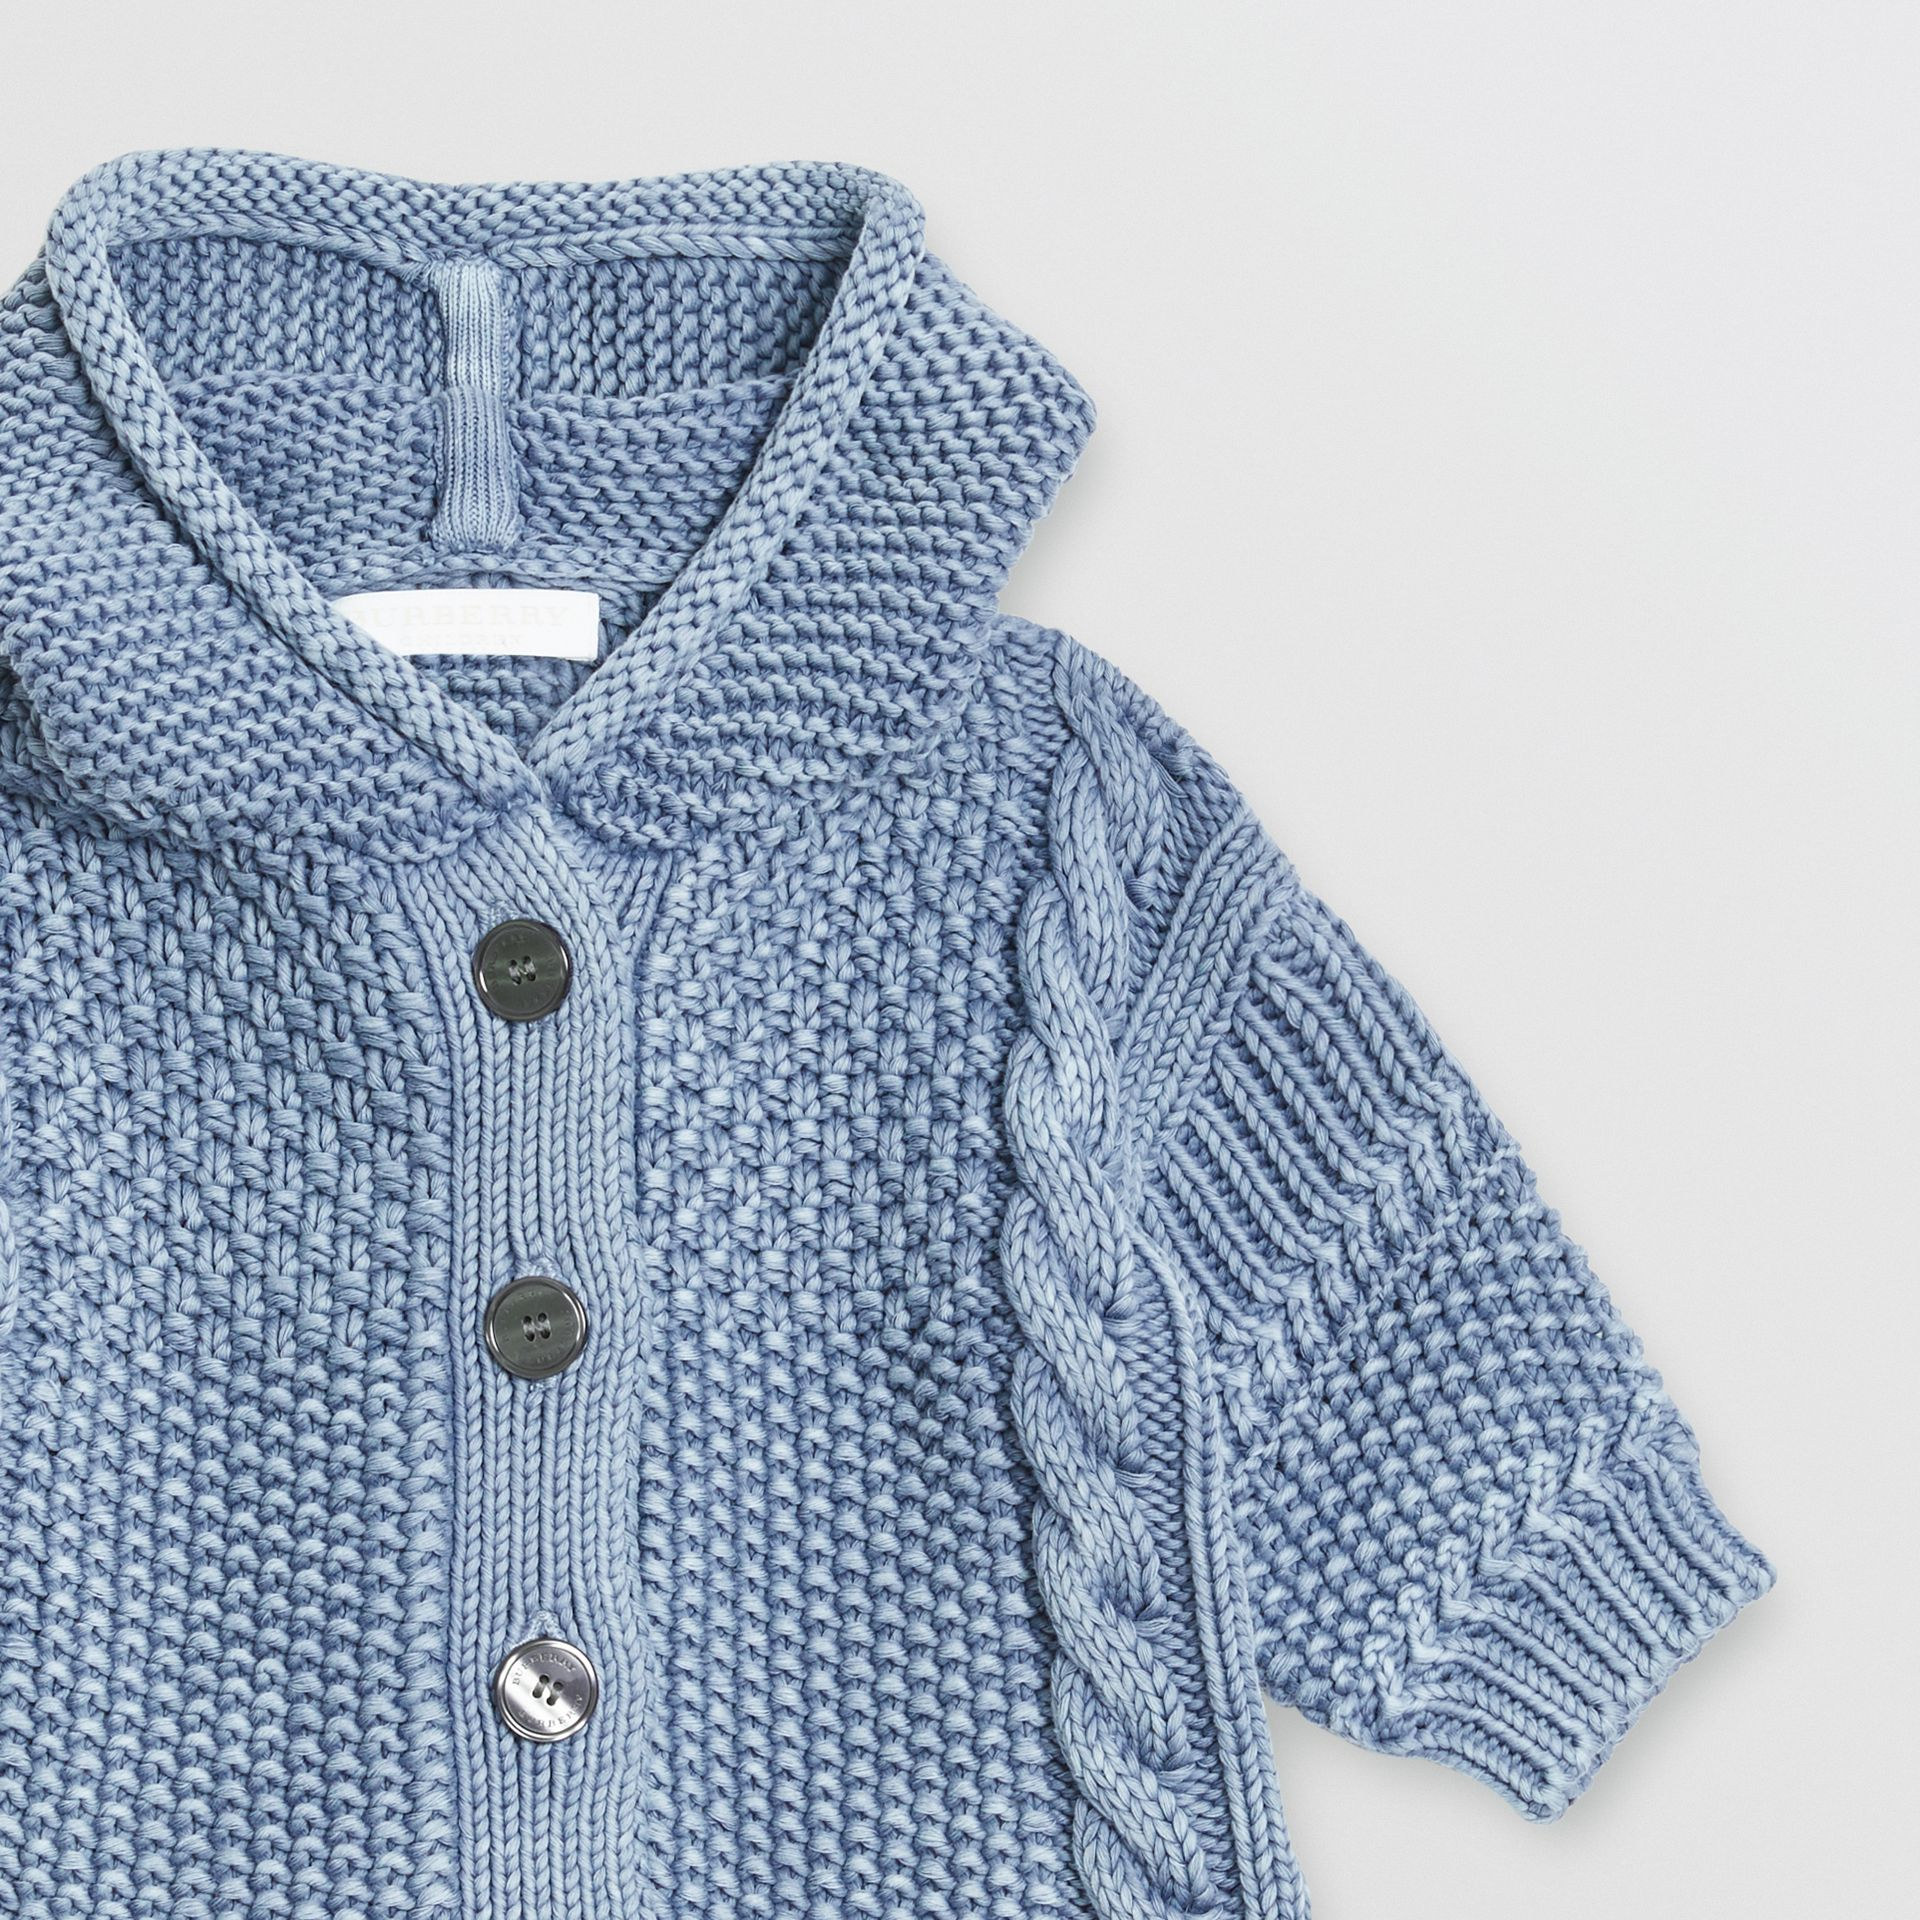 Contrast Knit Cotton Hooded Jacket in Dusty Blue - Children | Burberry Singapore - gallery image 4